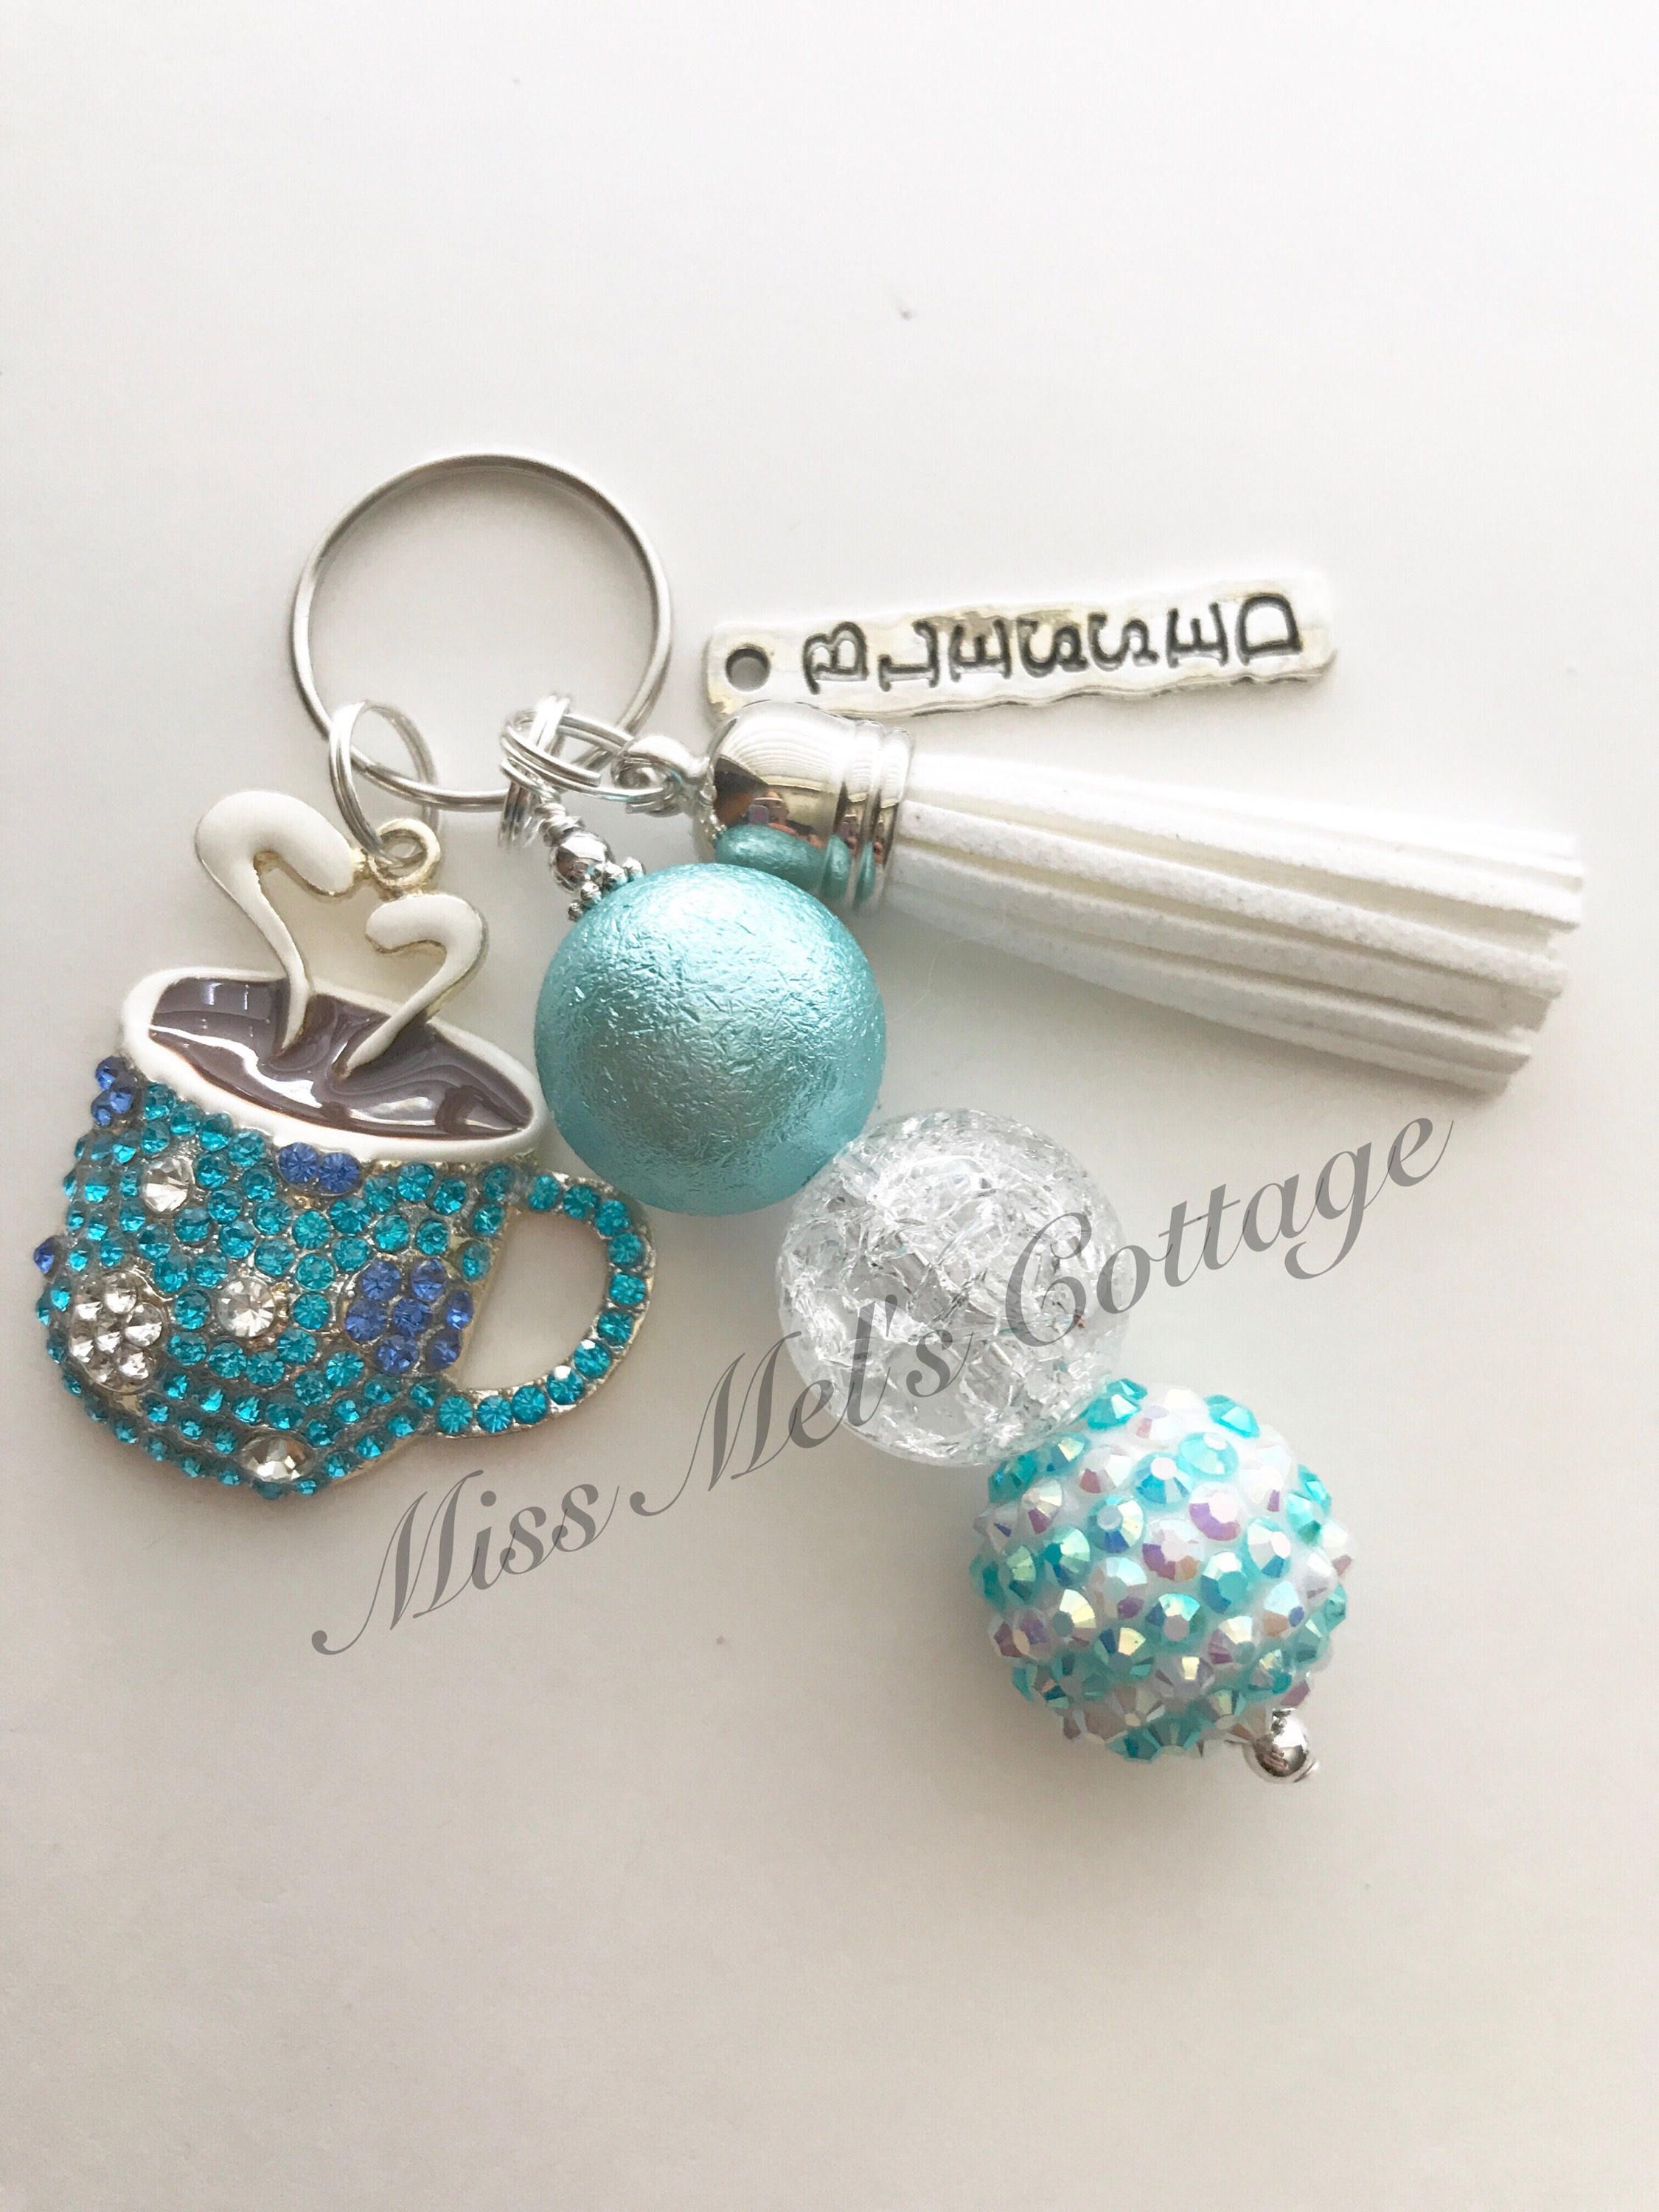 Bling Coffee Hot Chocolate Keychain charm with accent beads and tassel with  optional blessed charm tassel keychain purse bag charm by MissMelsCottage on  ... d8aa6a0af9b2